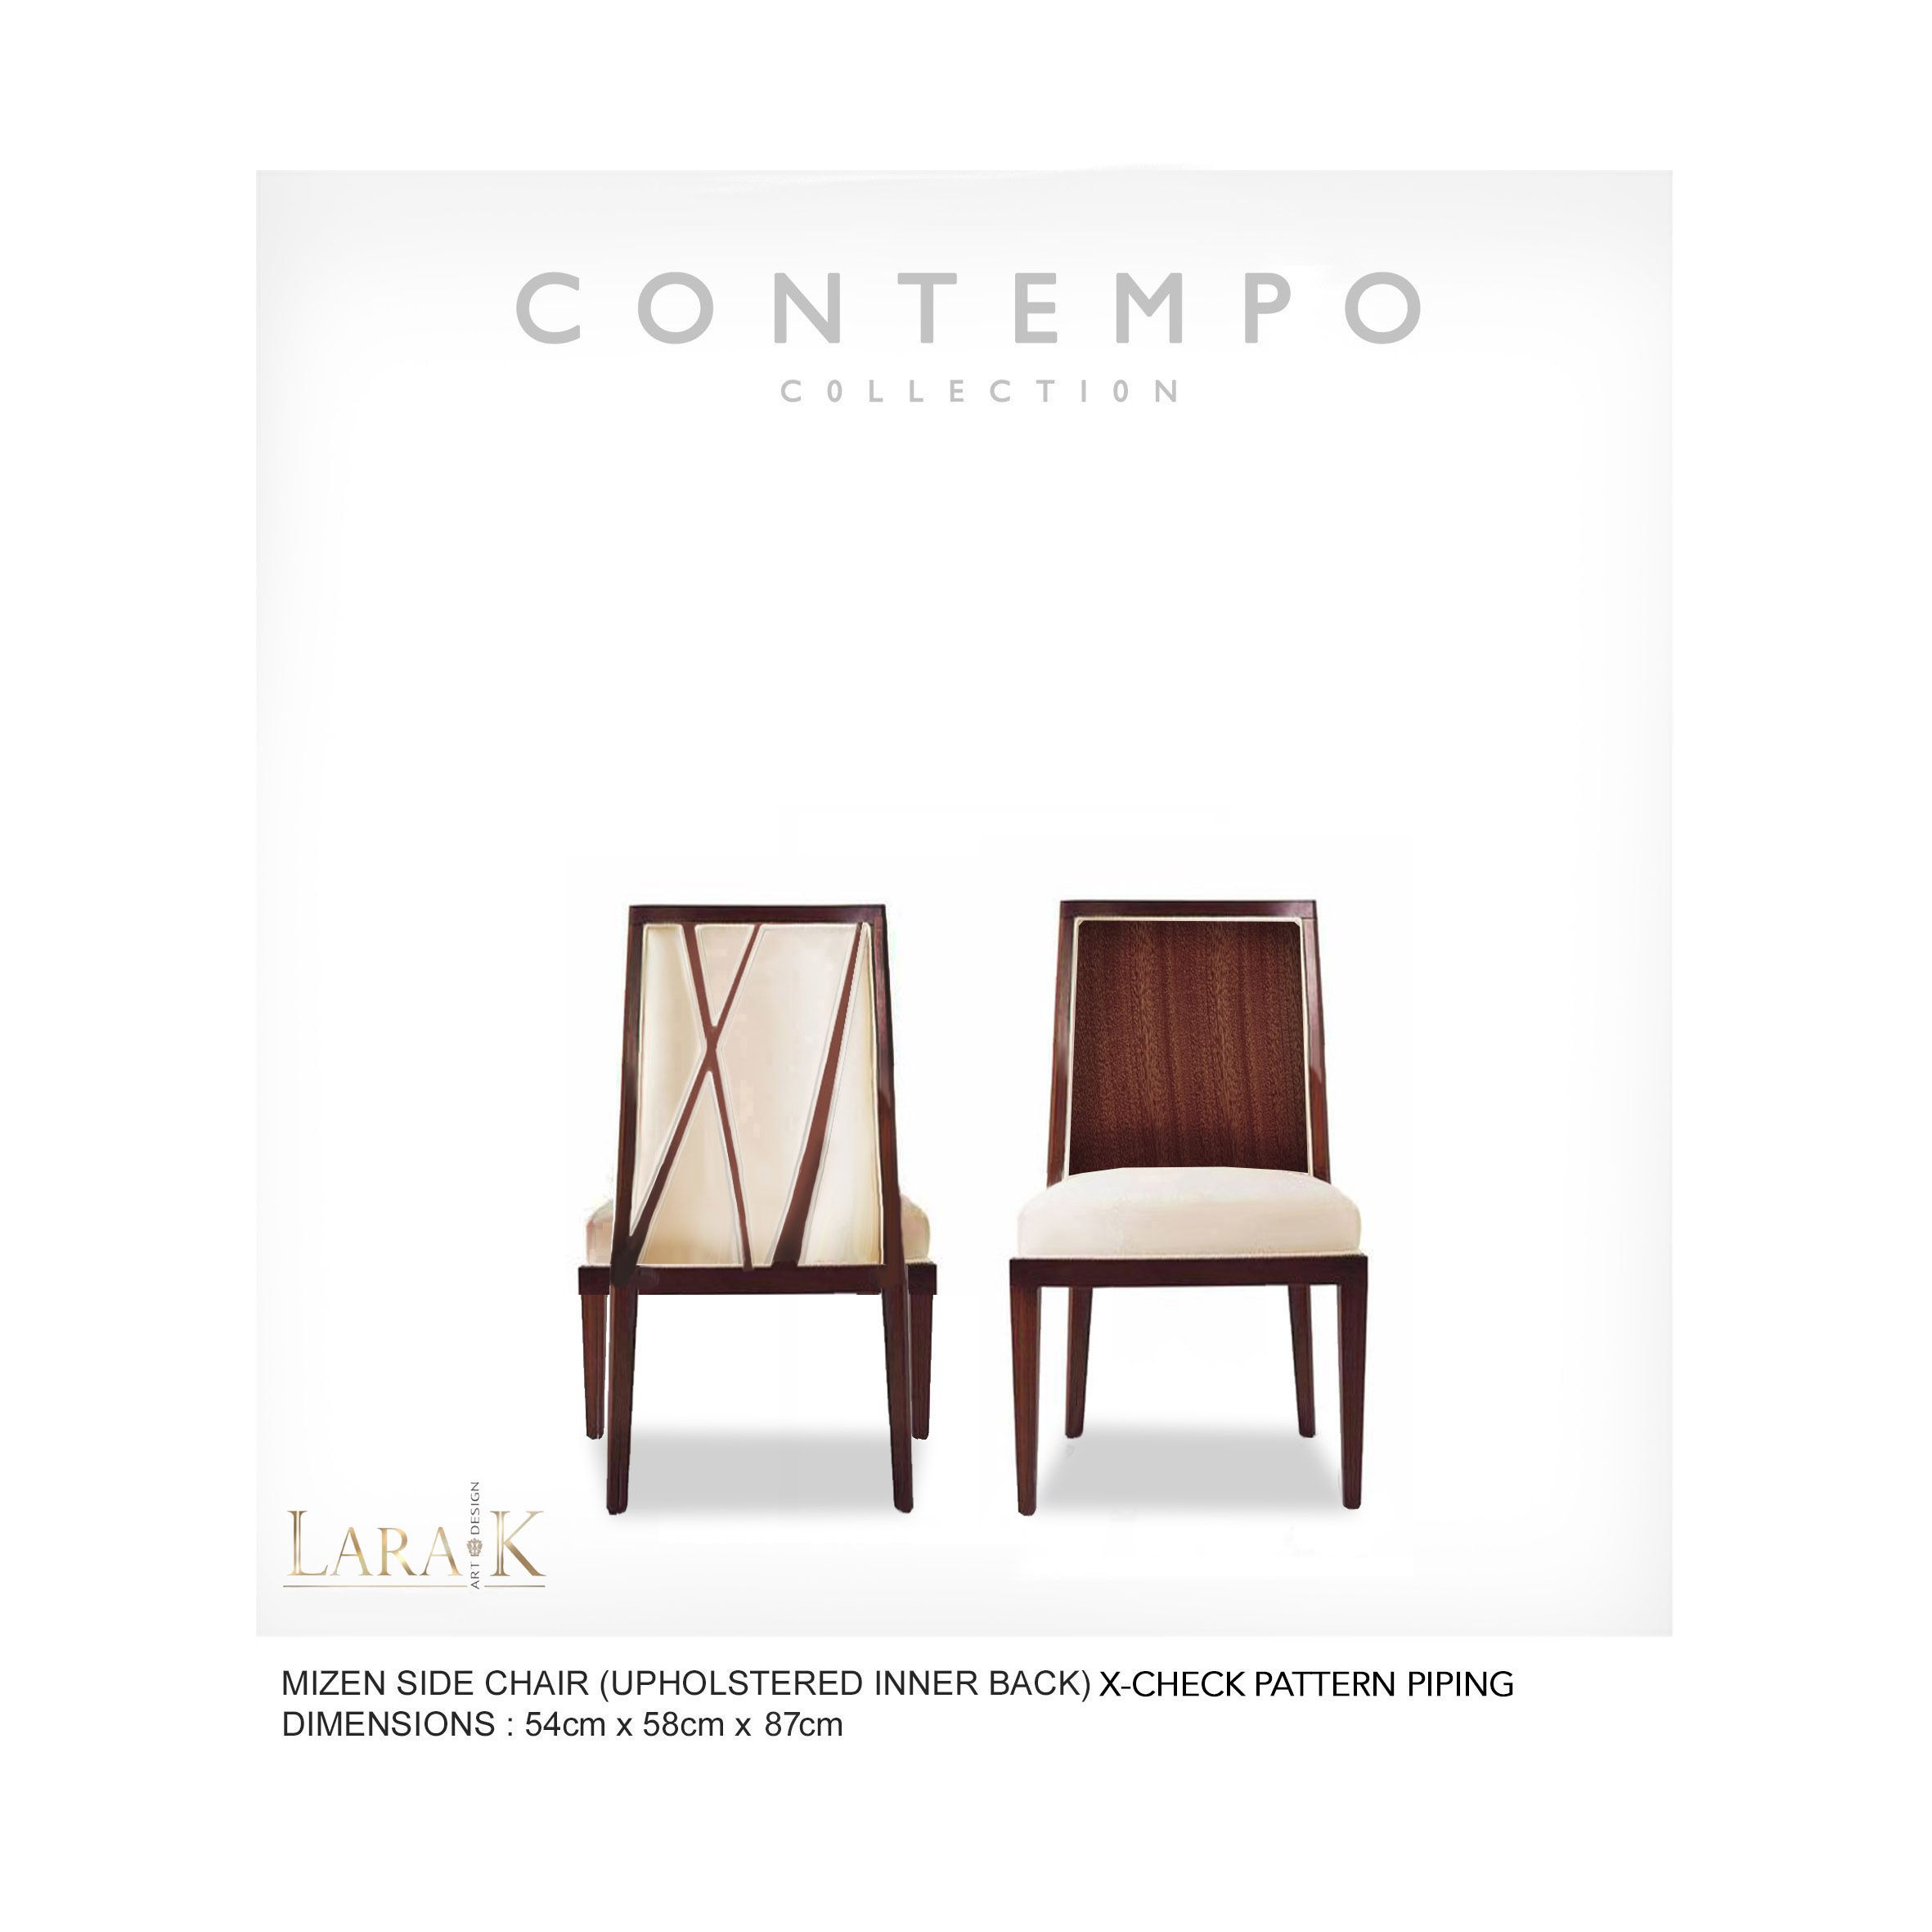 Dr Mizen Dining Side Chair The Contempo Collection Was Created